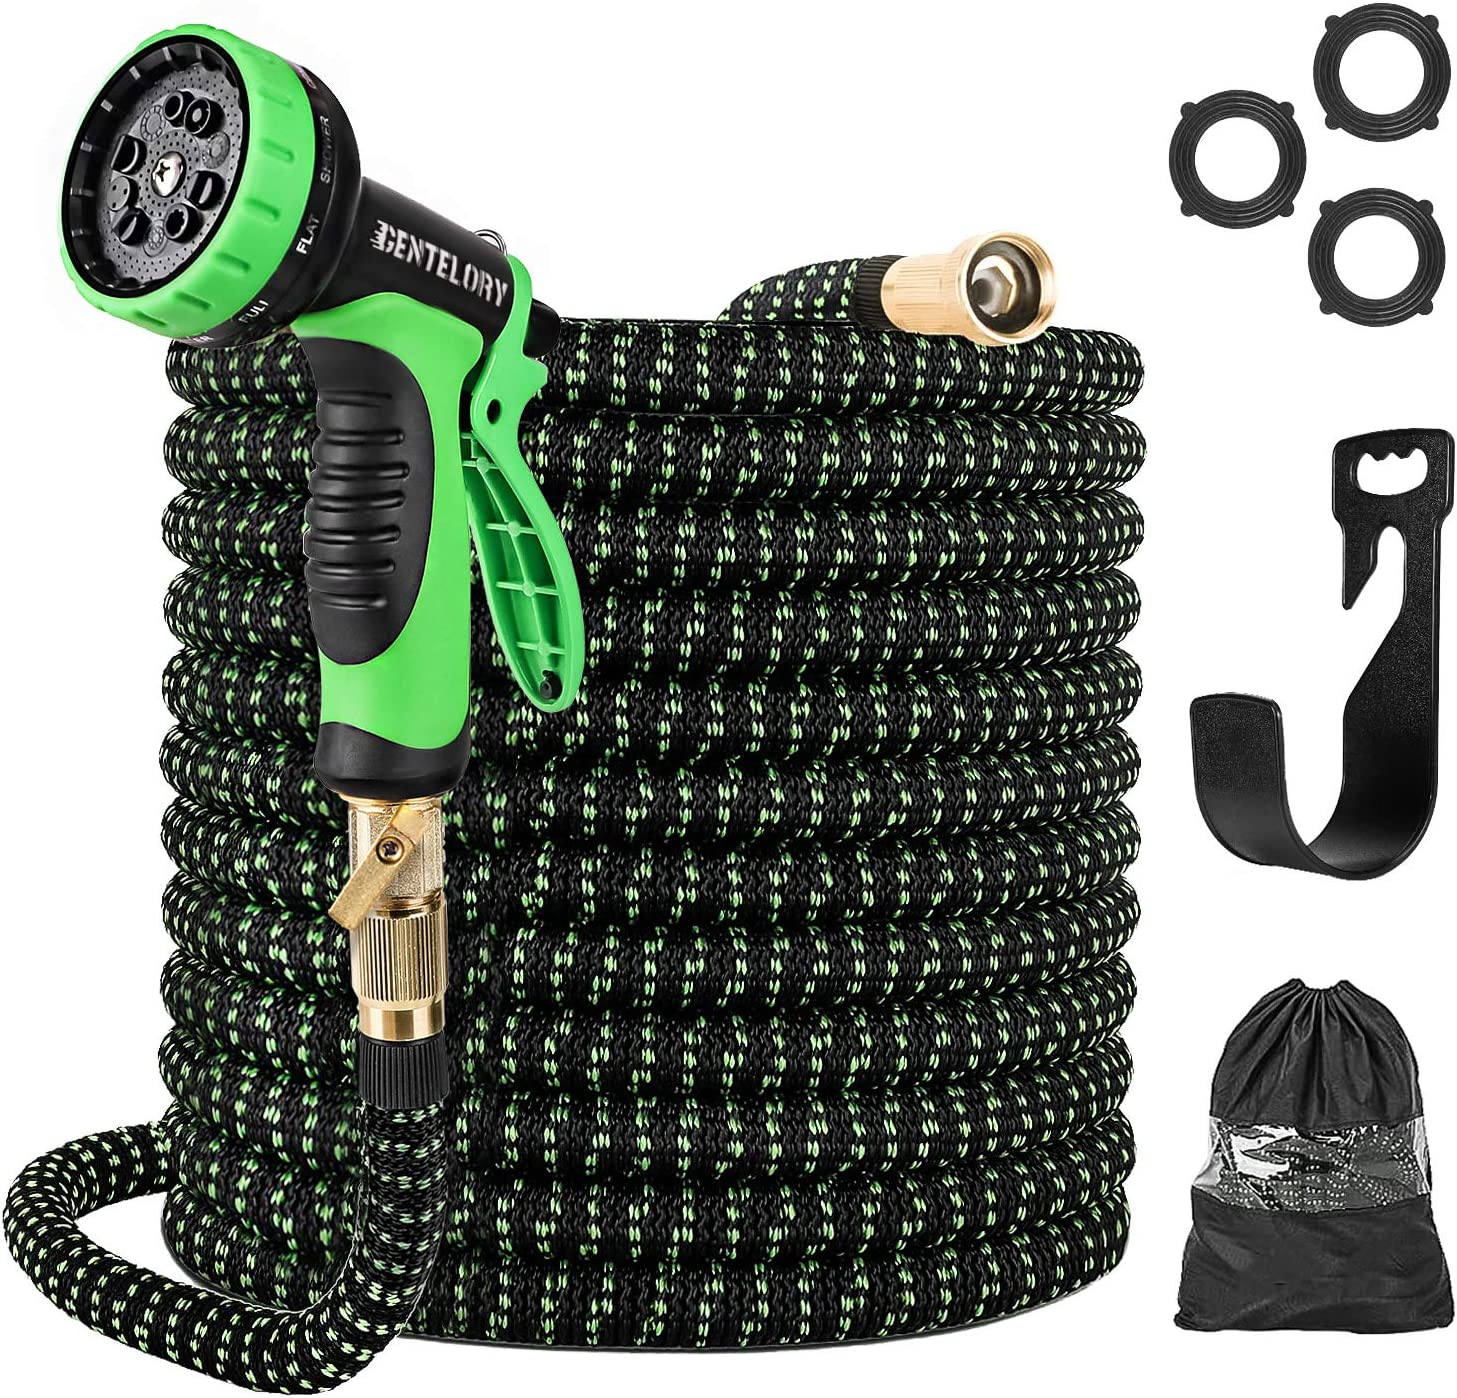 Max 67% OFF Gentelory Expandable 100FT Garden Clearance SALE! Limited time! Hoses Water 10 Func Hosewith